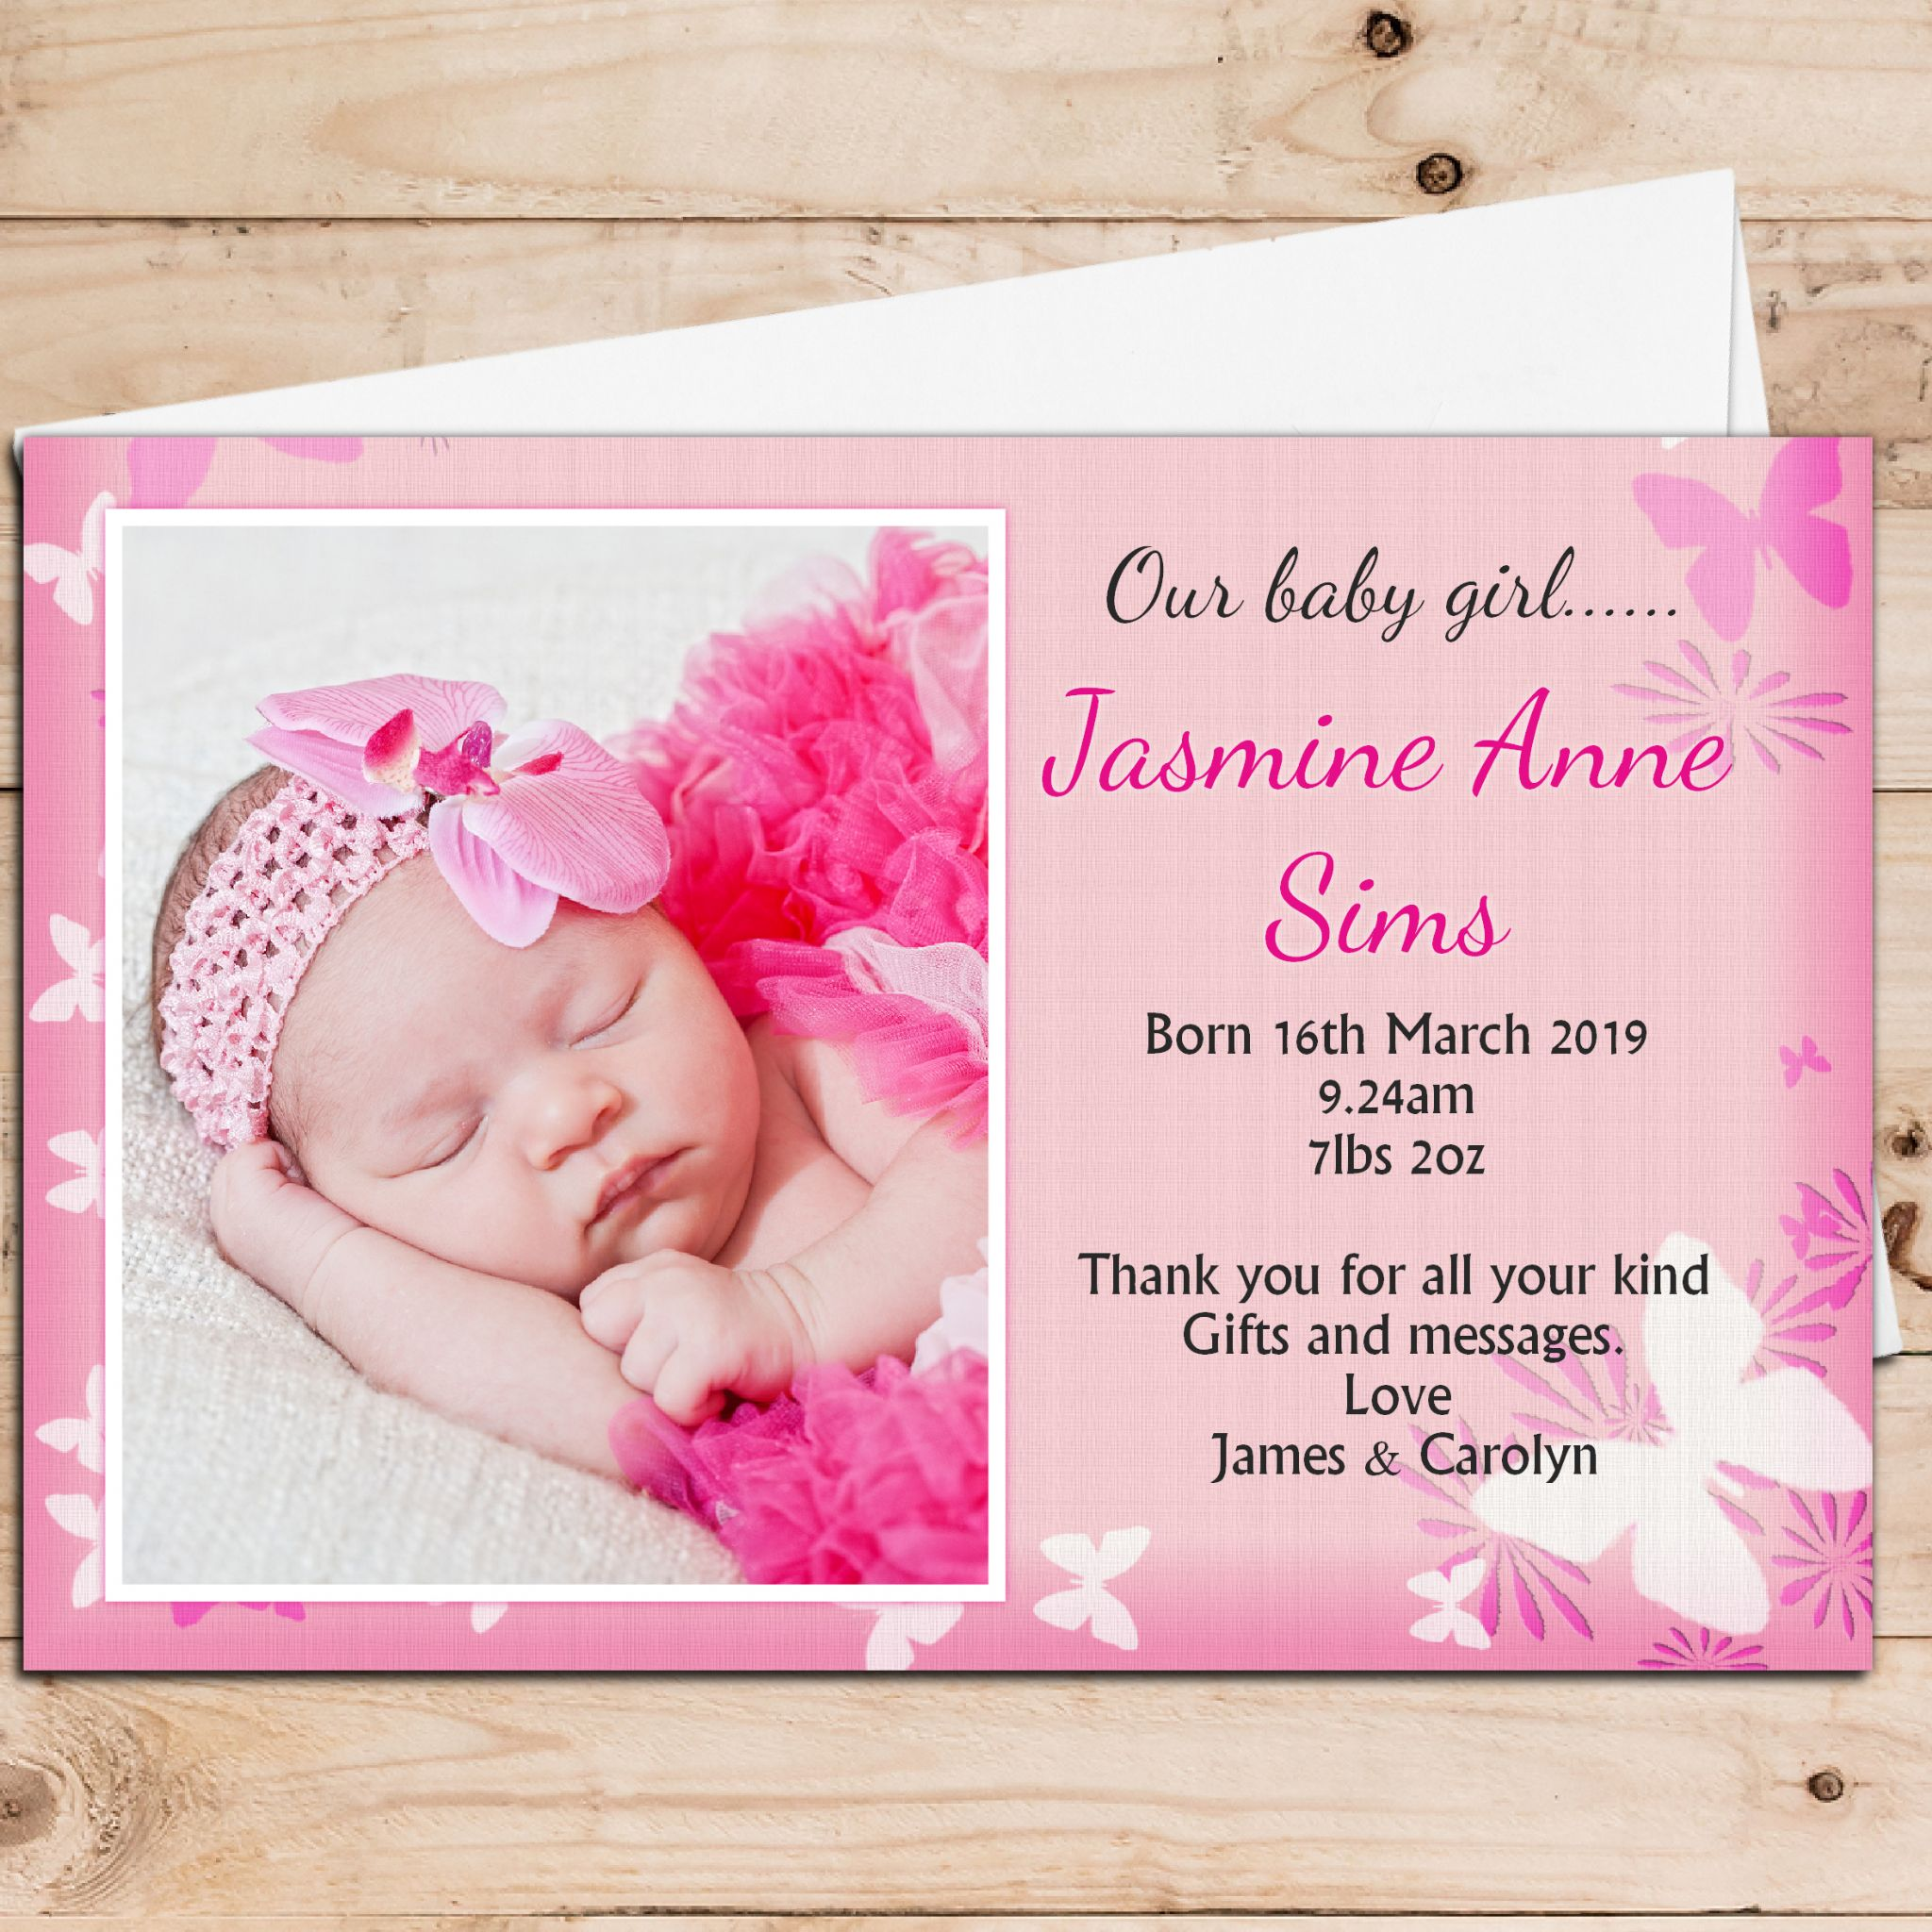 Baby Birth Invitation Card funny graduation invites wedding – Baby Birth Invitation Card